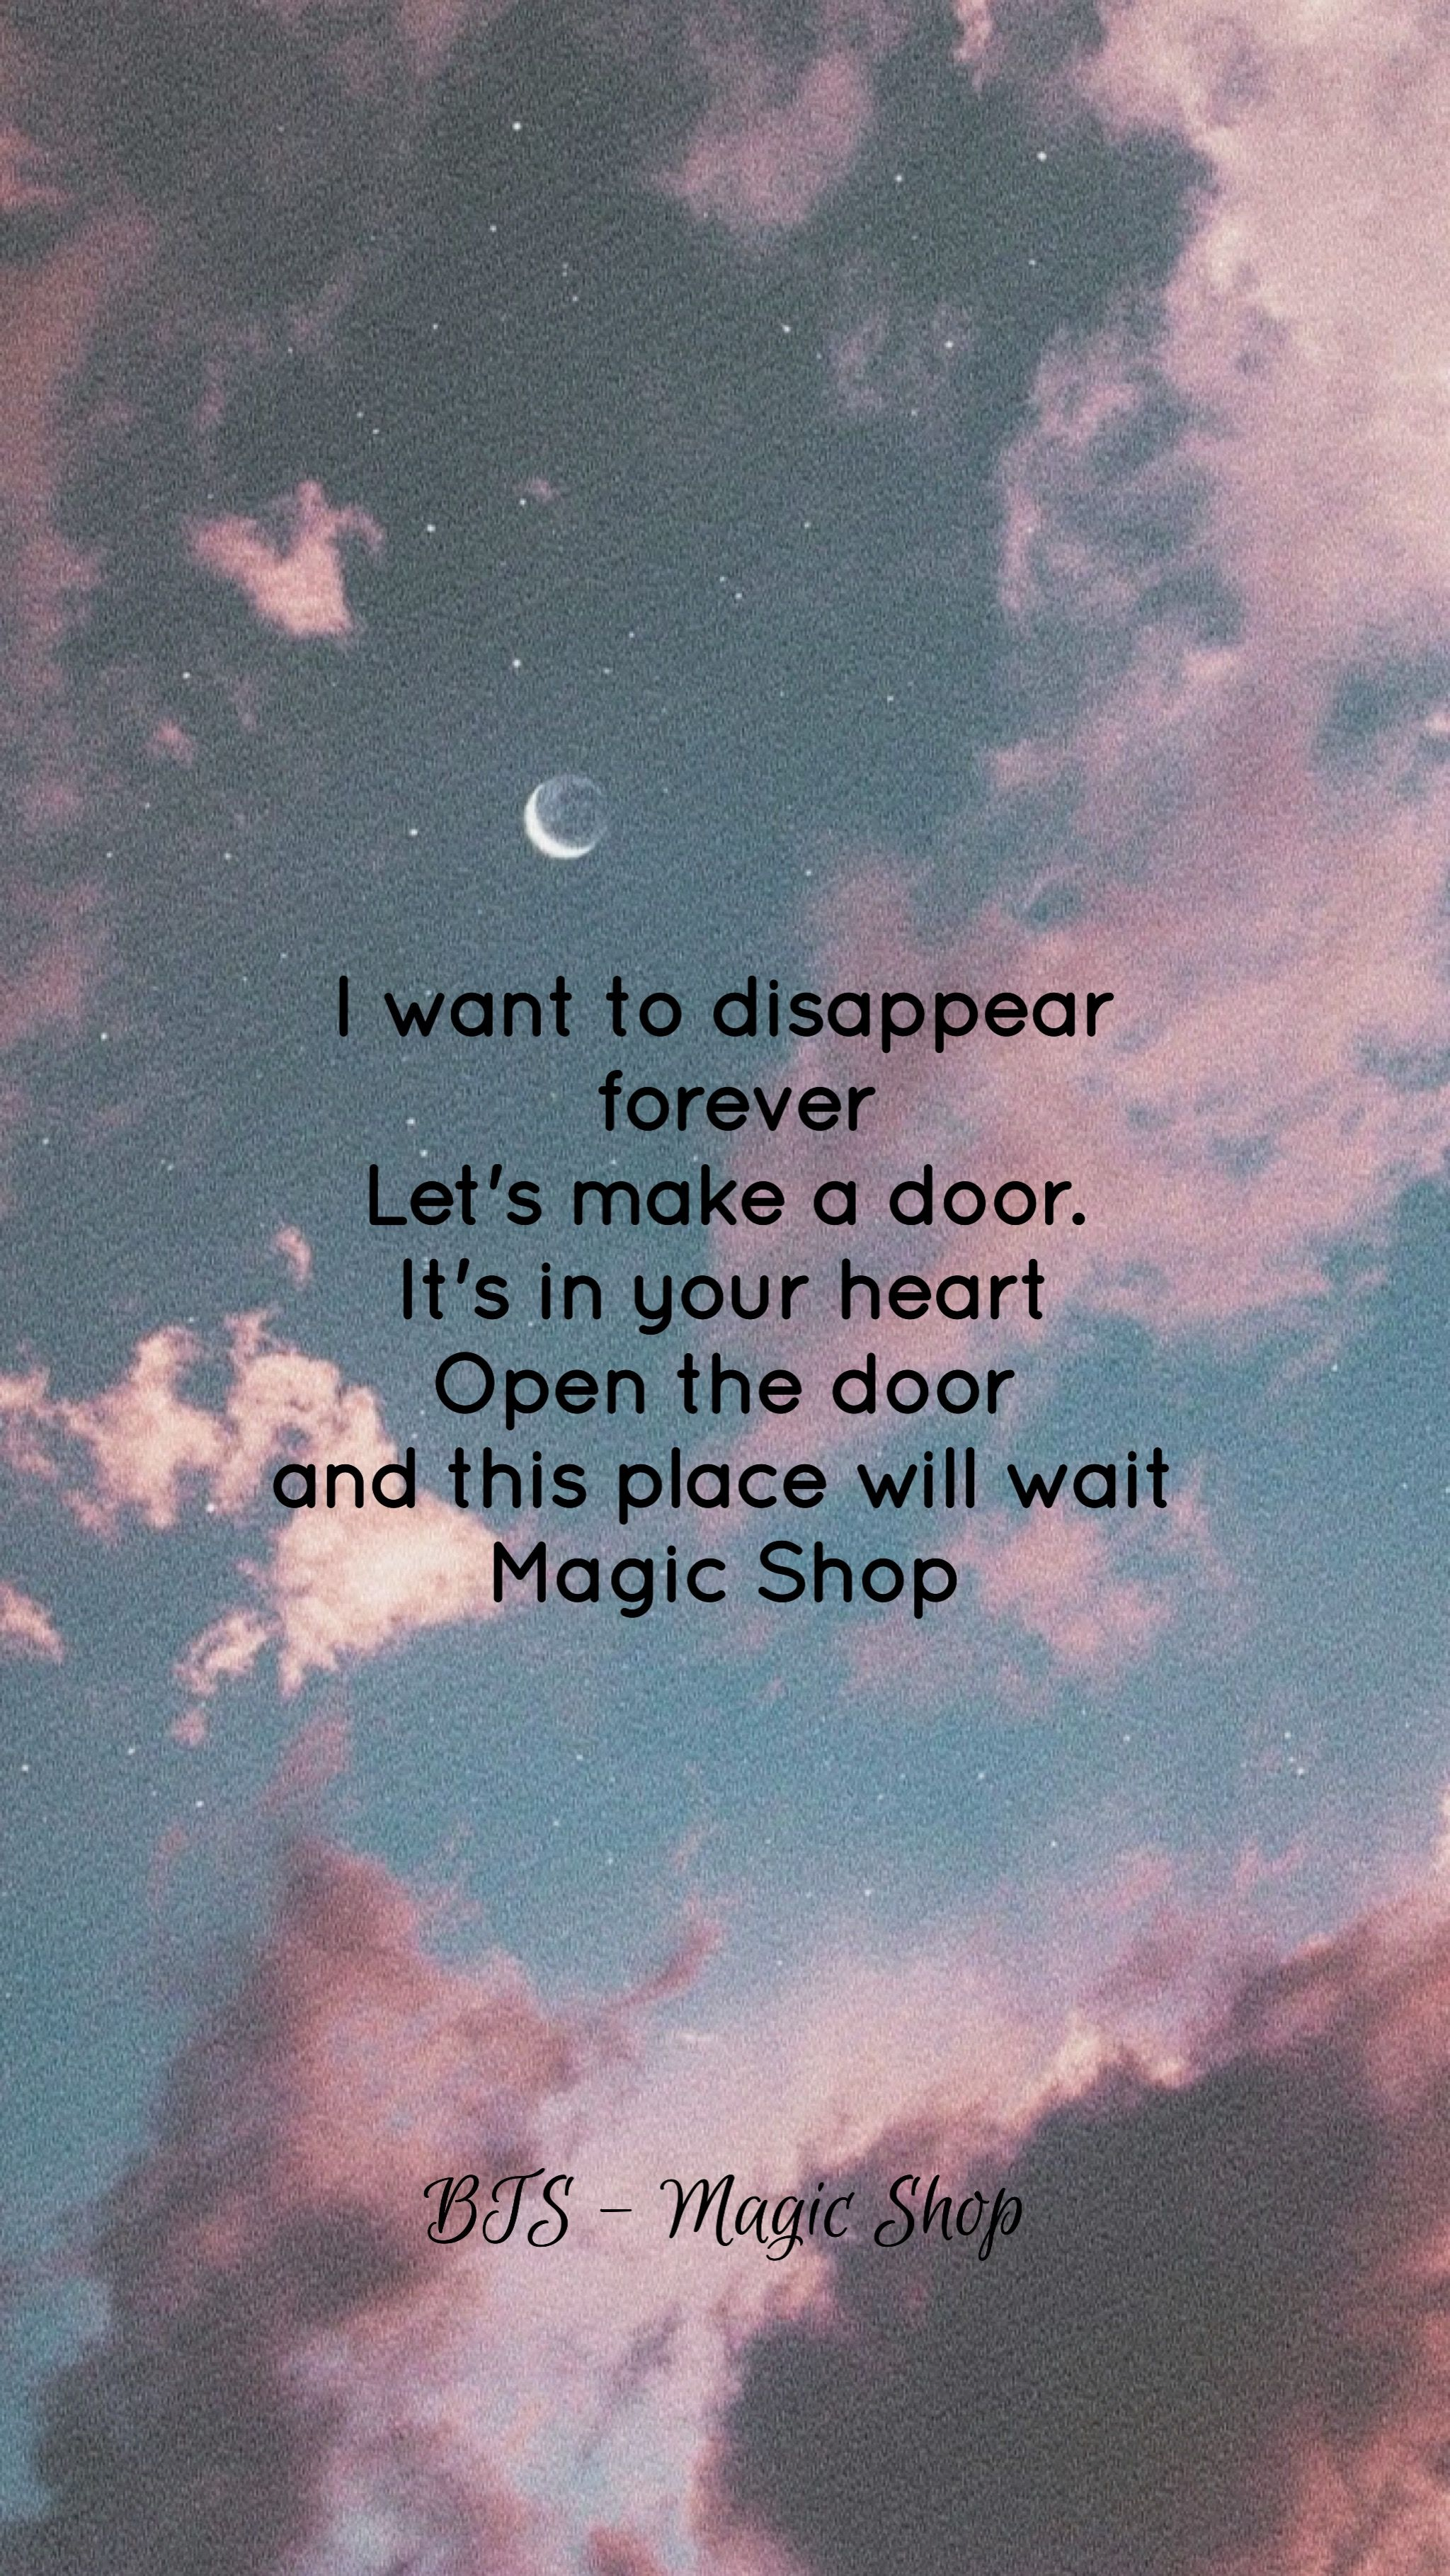 Bts Magic Shop Bts Lyrics Quotes Bts Lyric Bts Quotes